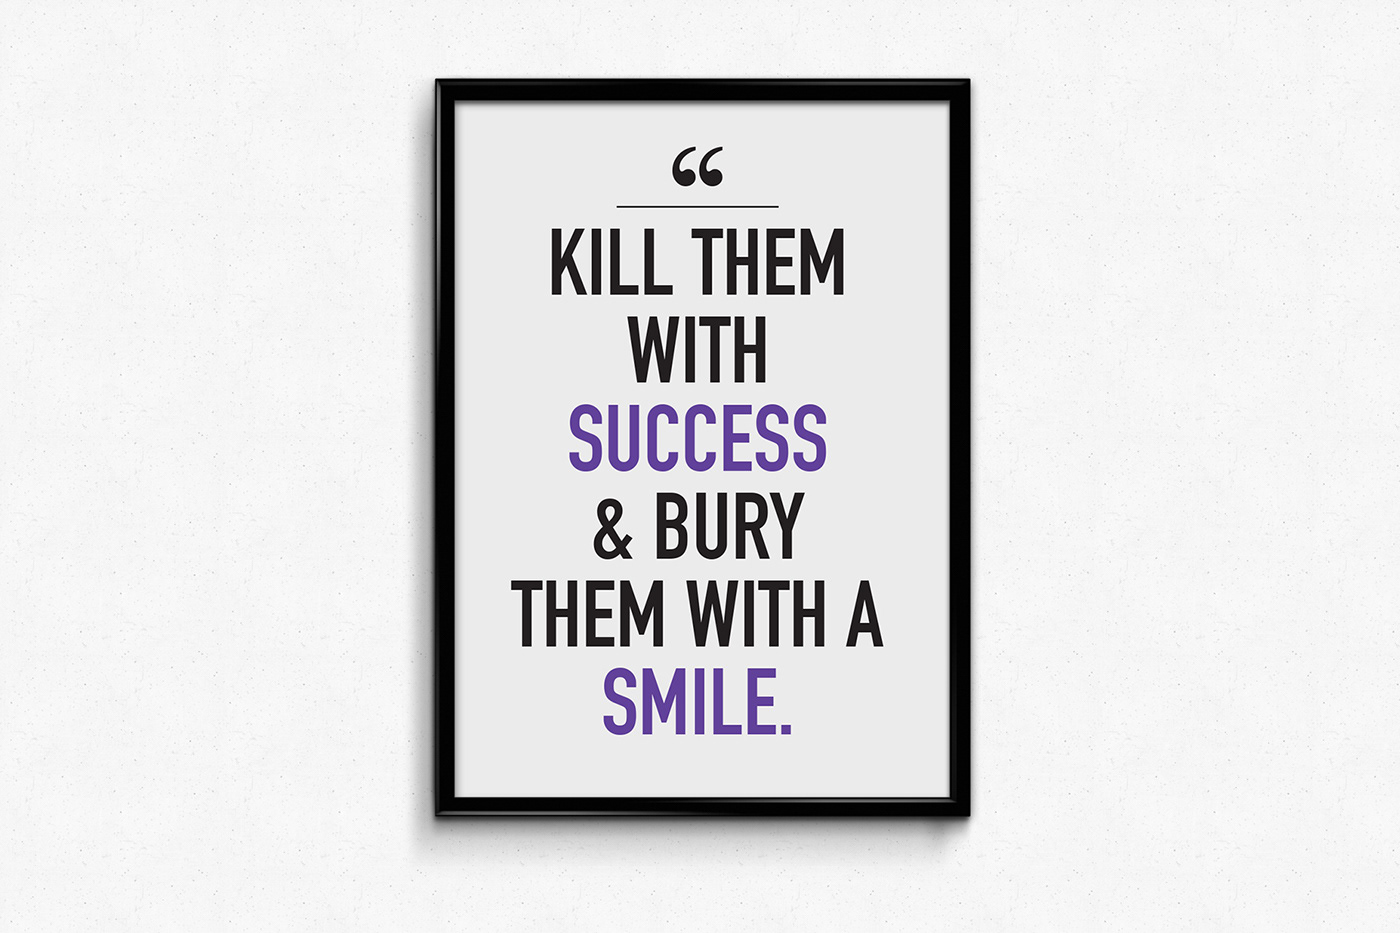 motivational quotes for women - kill them with success and burg them with a smile